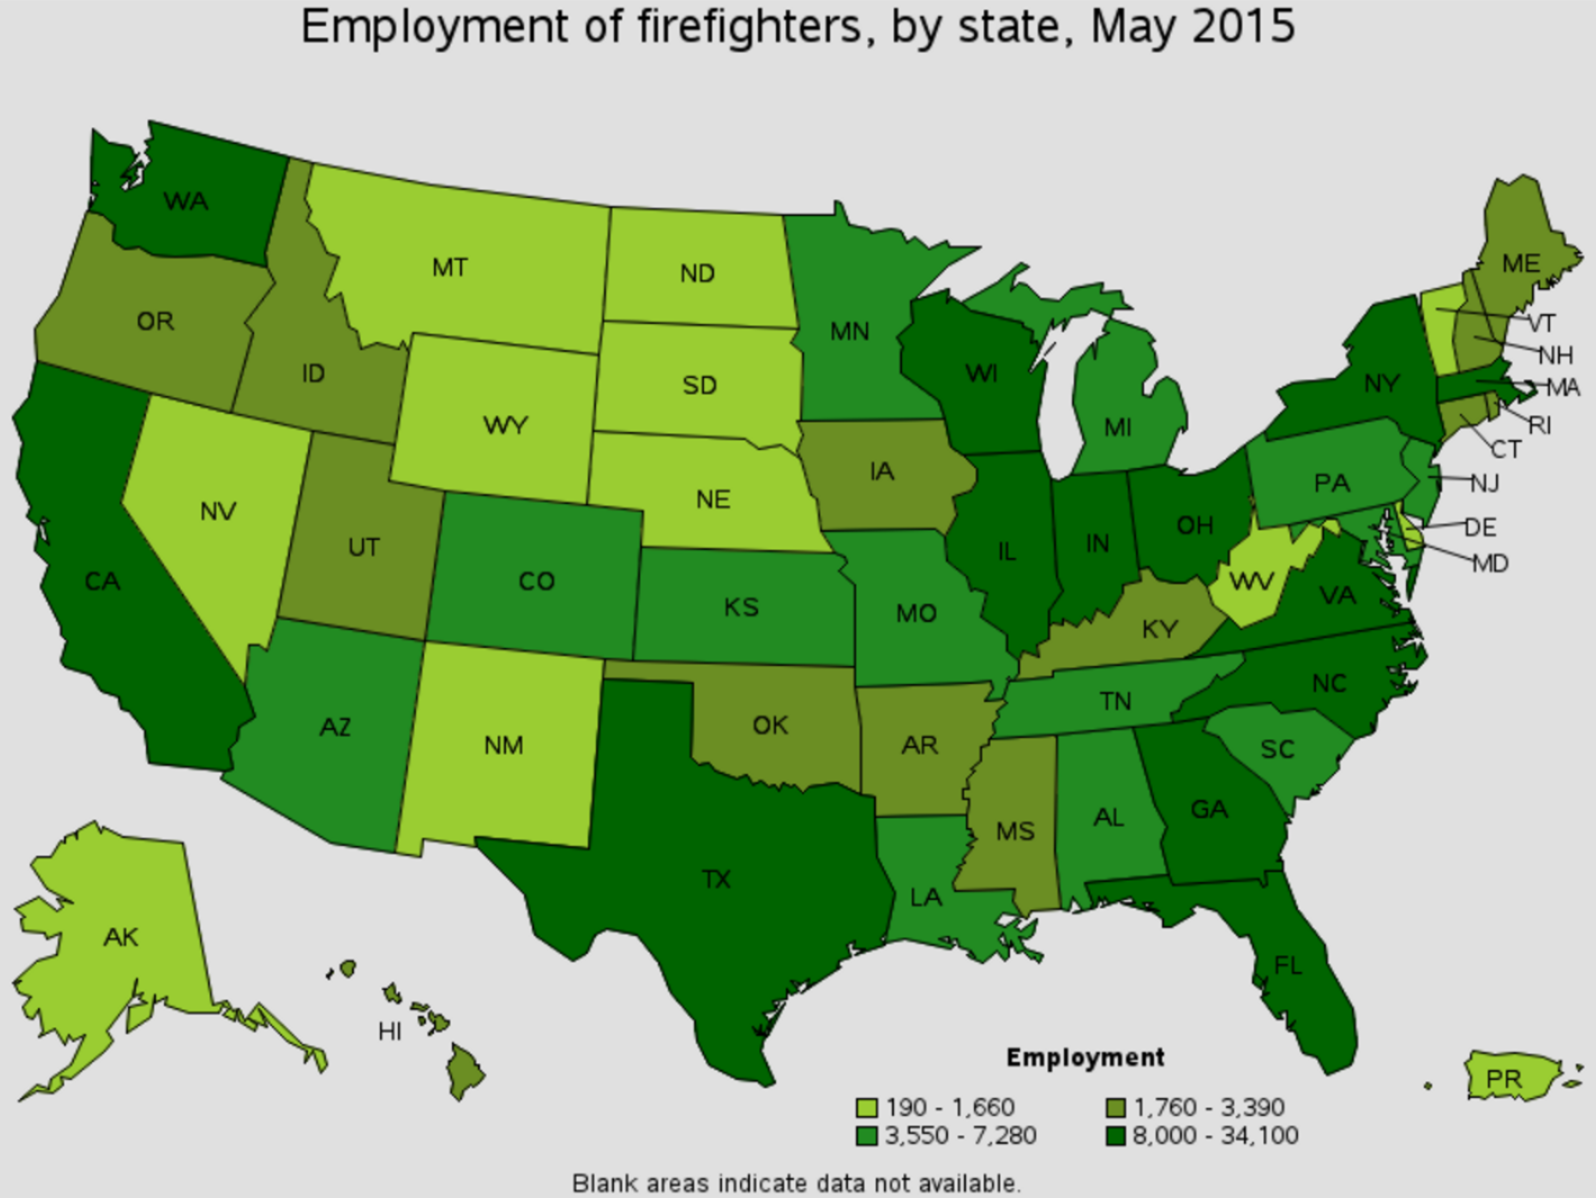 firefighter job outlook by state Woods Cross Utah